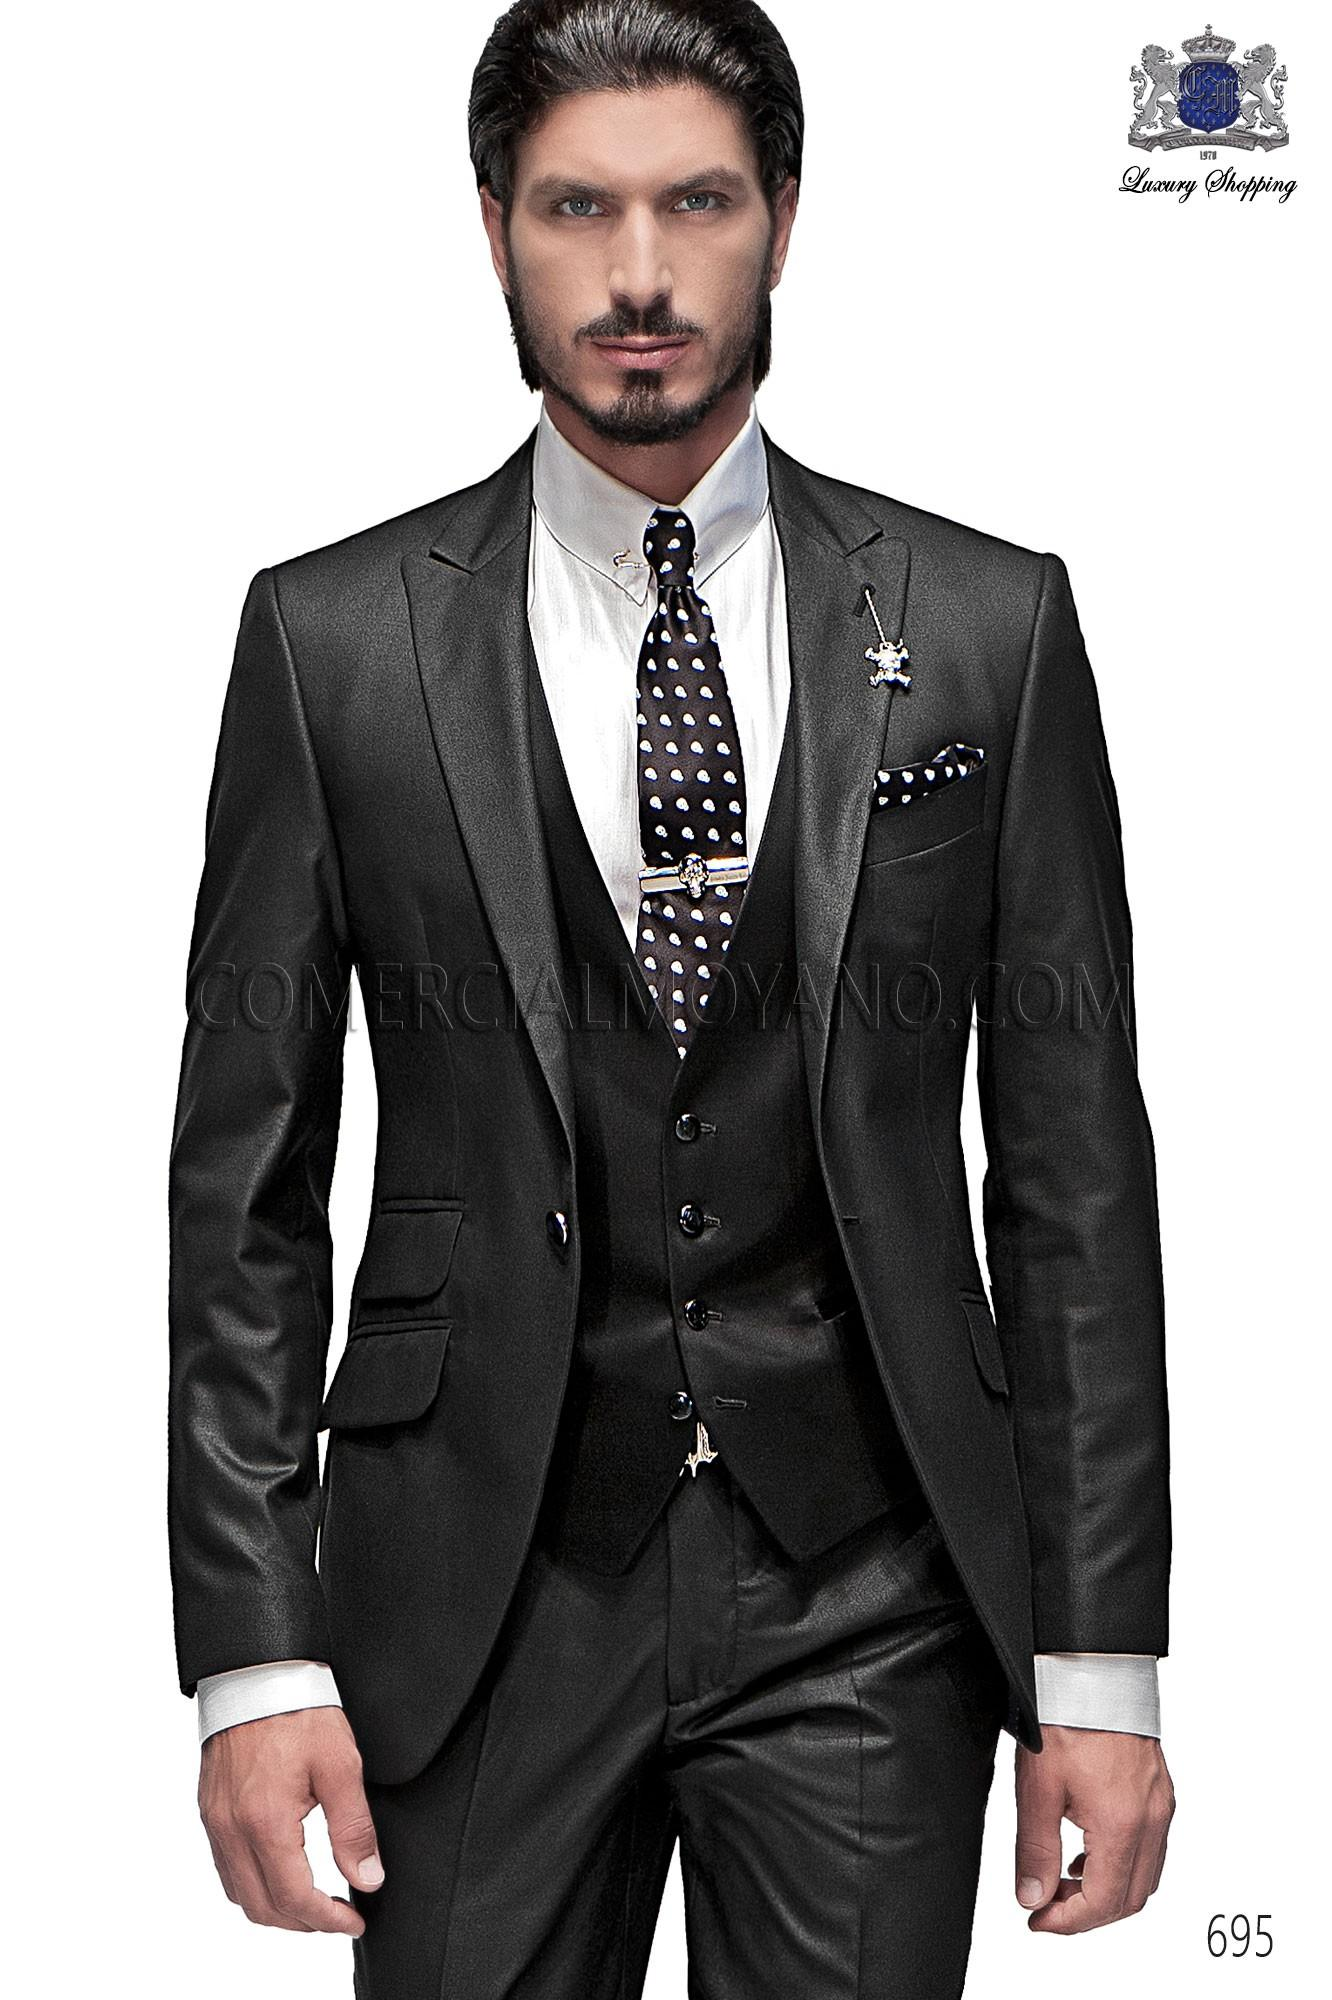 Discount Charcoal Black Suit For Men | 2017 Charcoal Black Suit